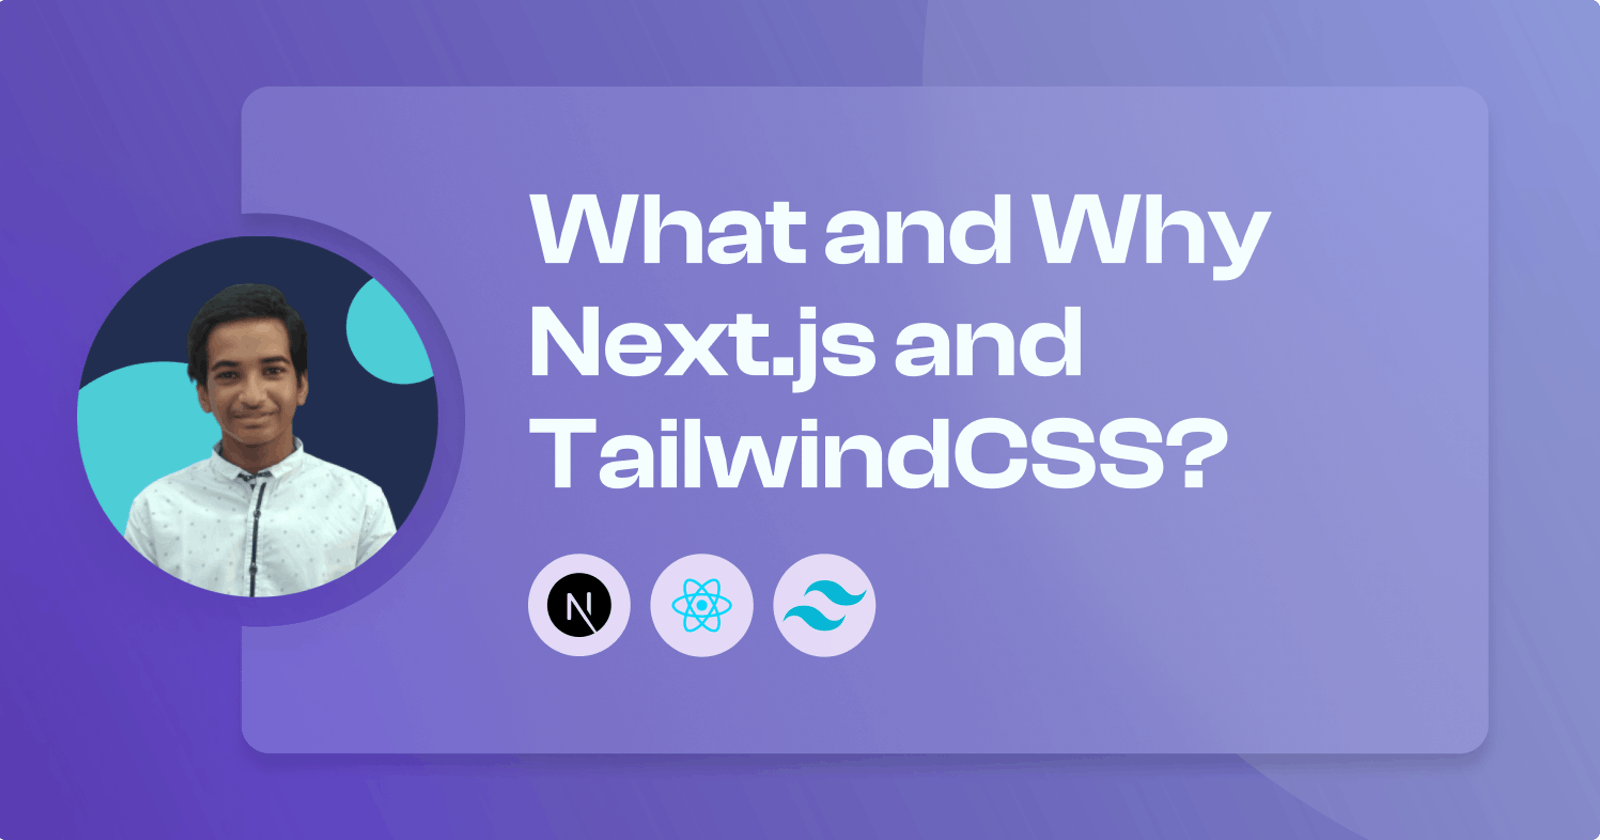 What and Why Next.js and TailwindCSS?